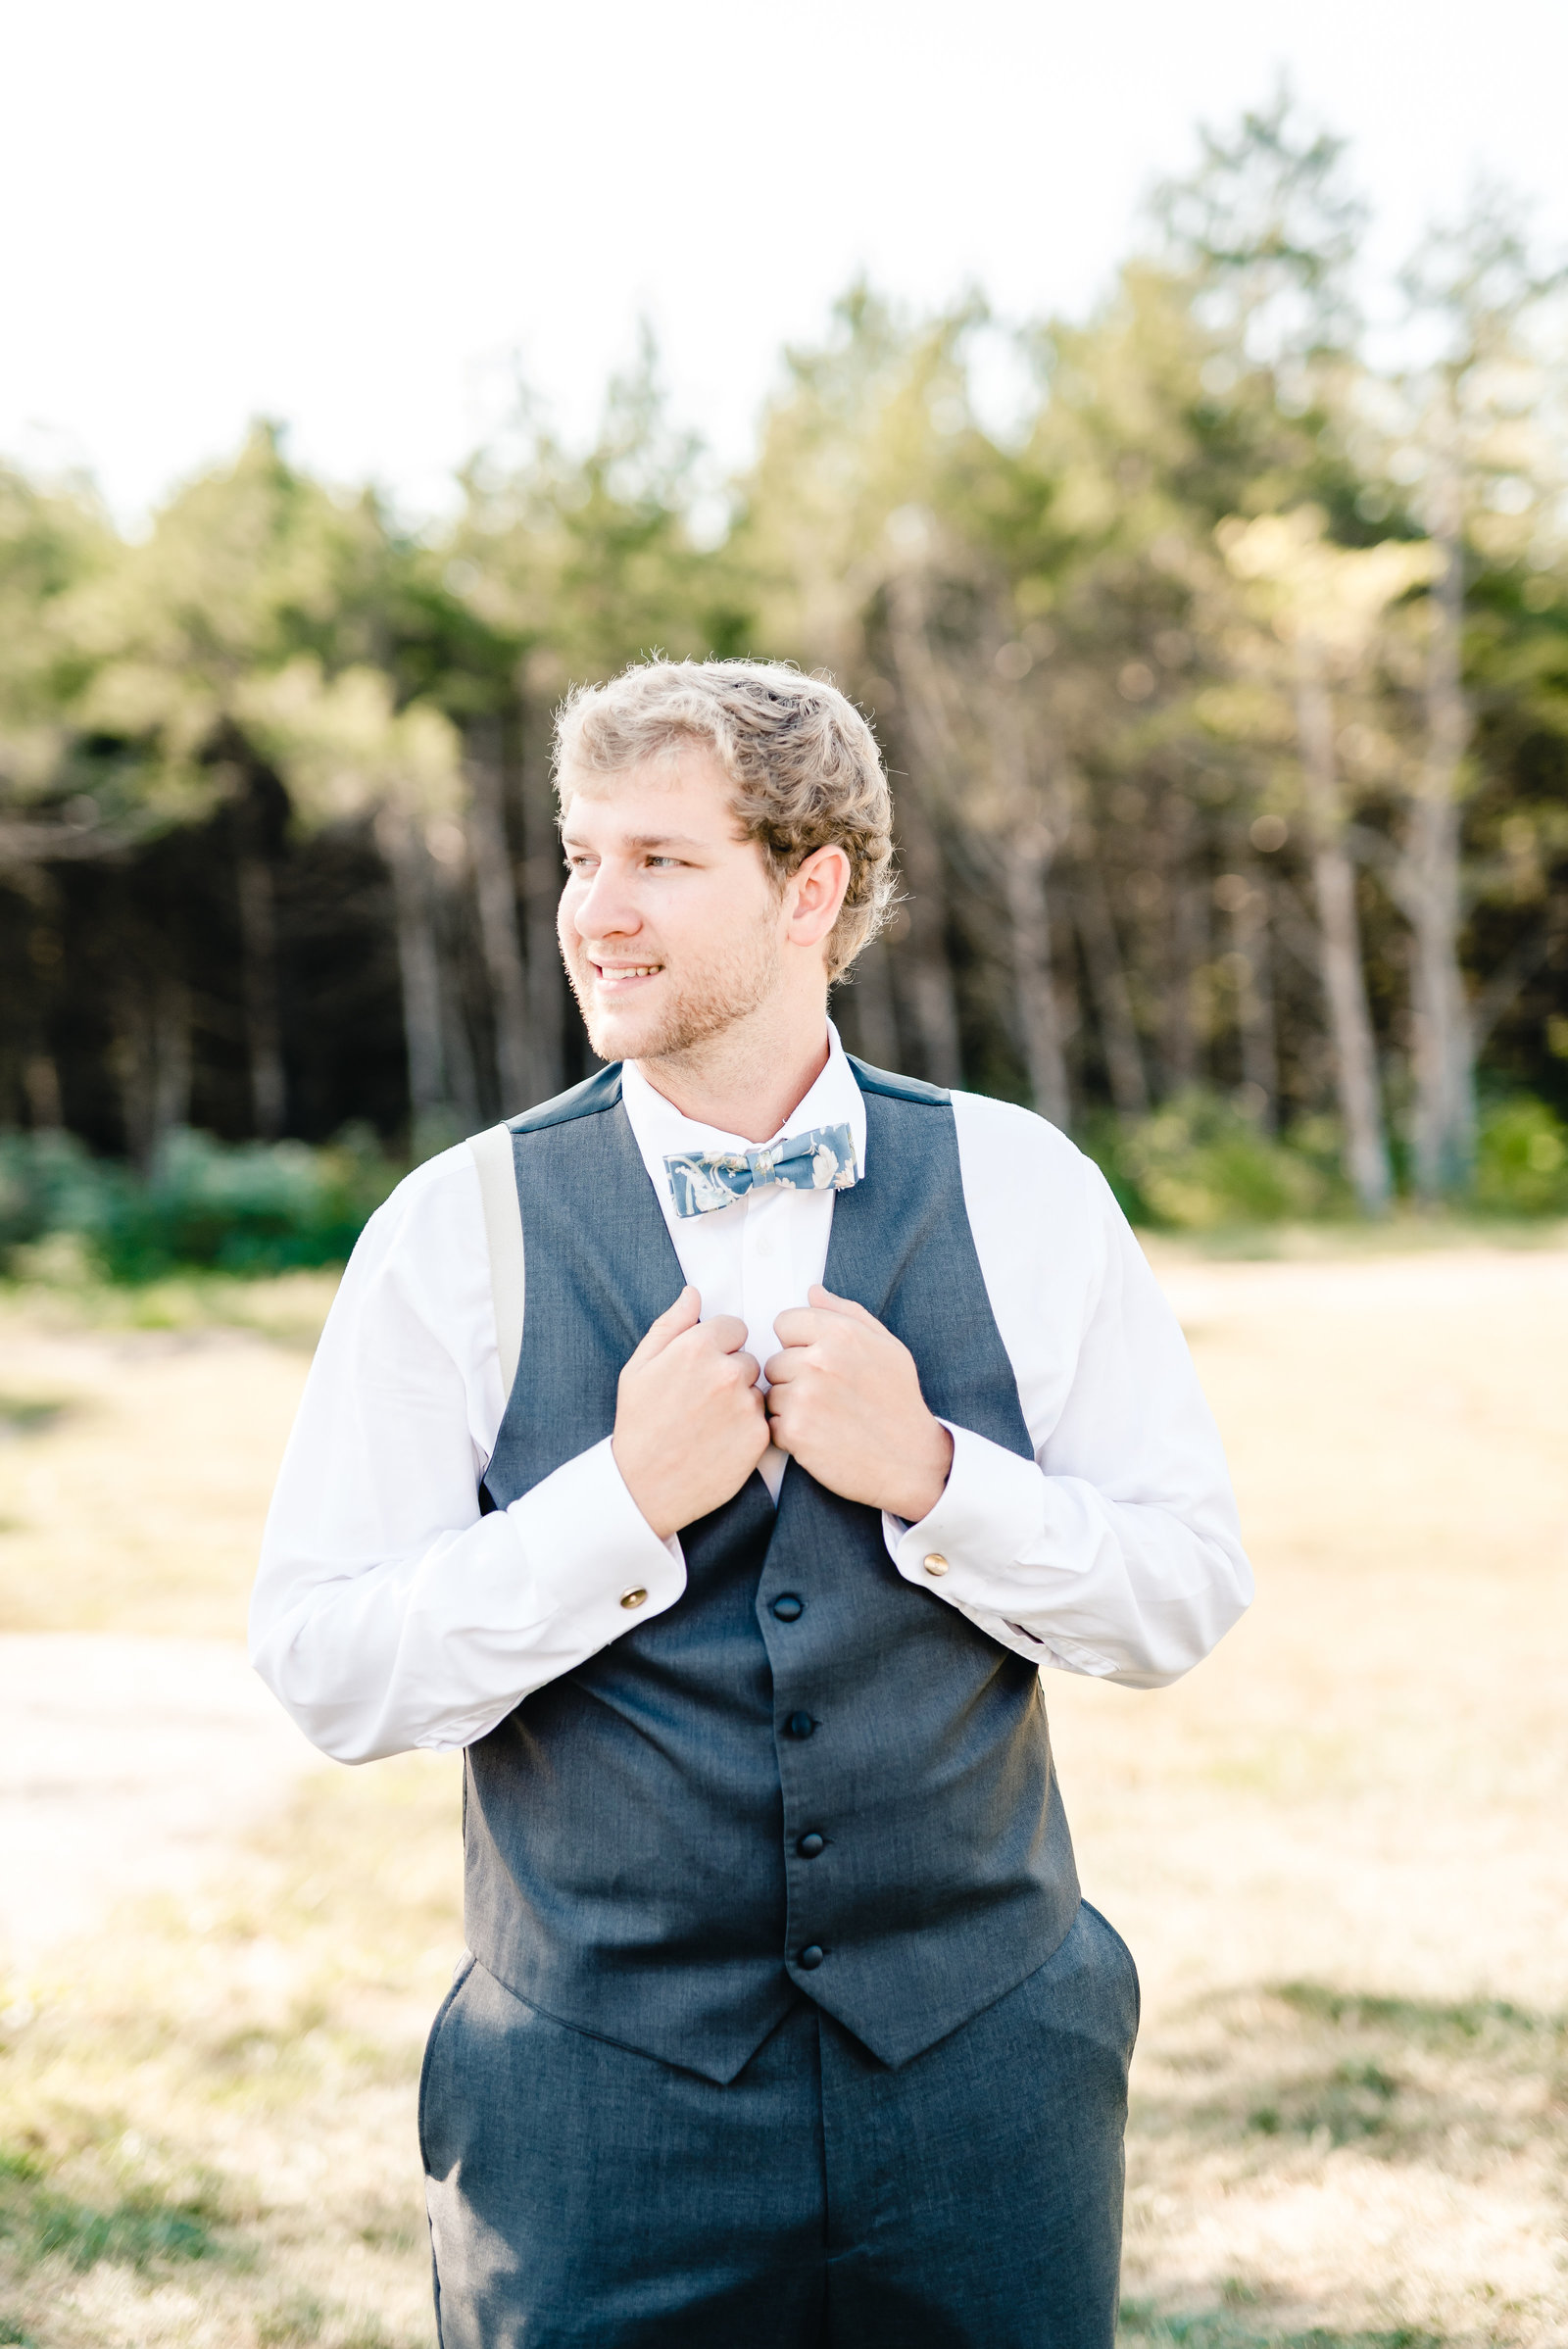 WeiderWeddingBrideandGroomPortraits-27